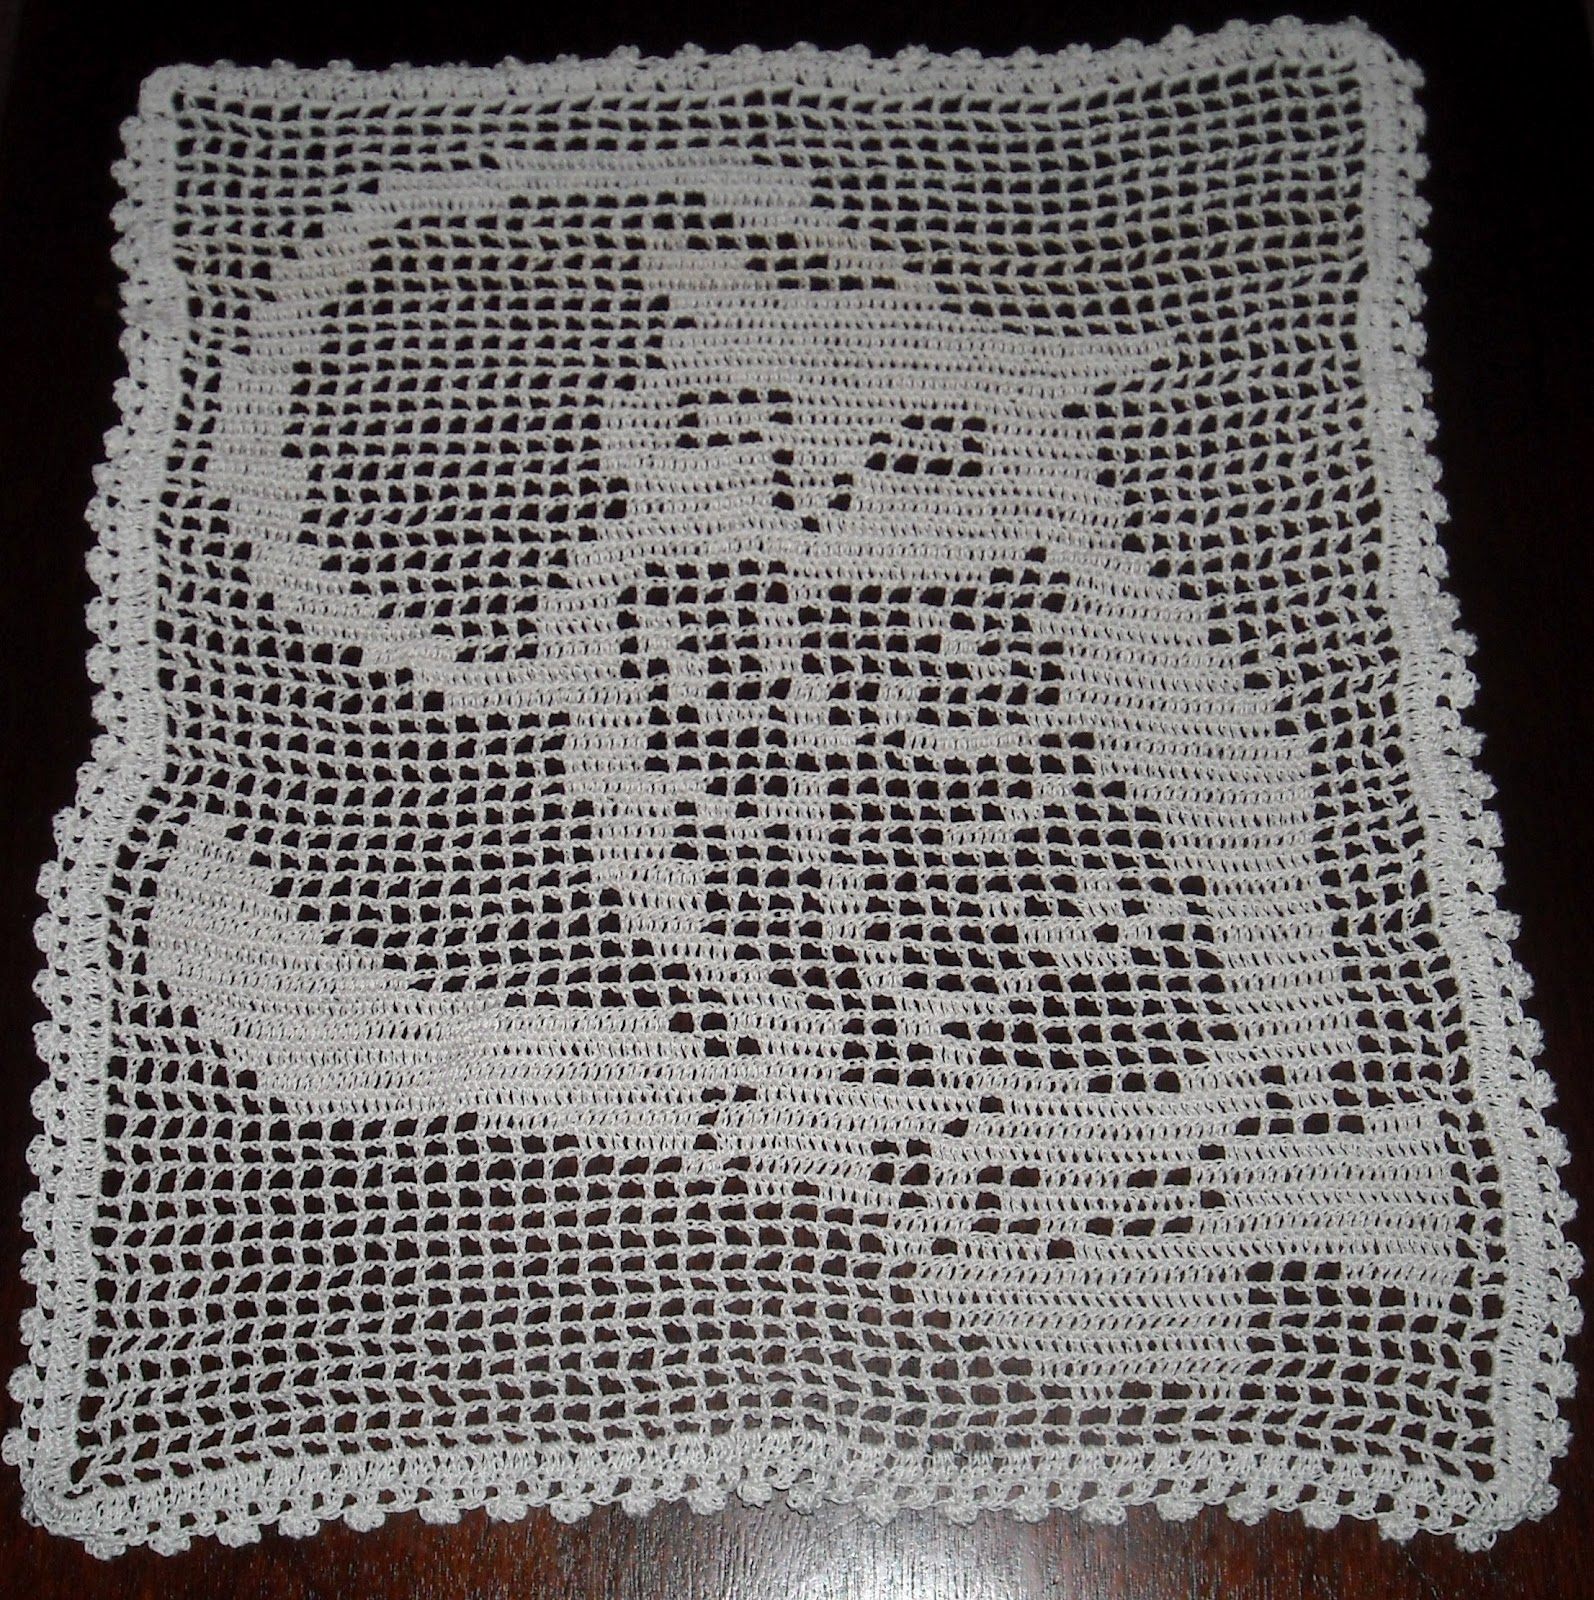 Free Filet Crochet Patterns : Free Filet Crochet Owl Patterns Car Interior Design